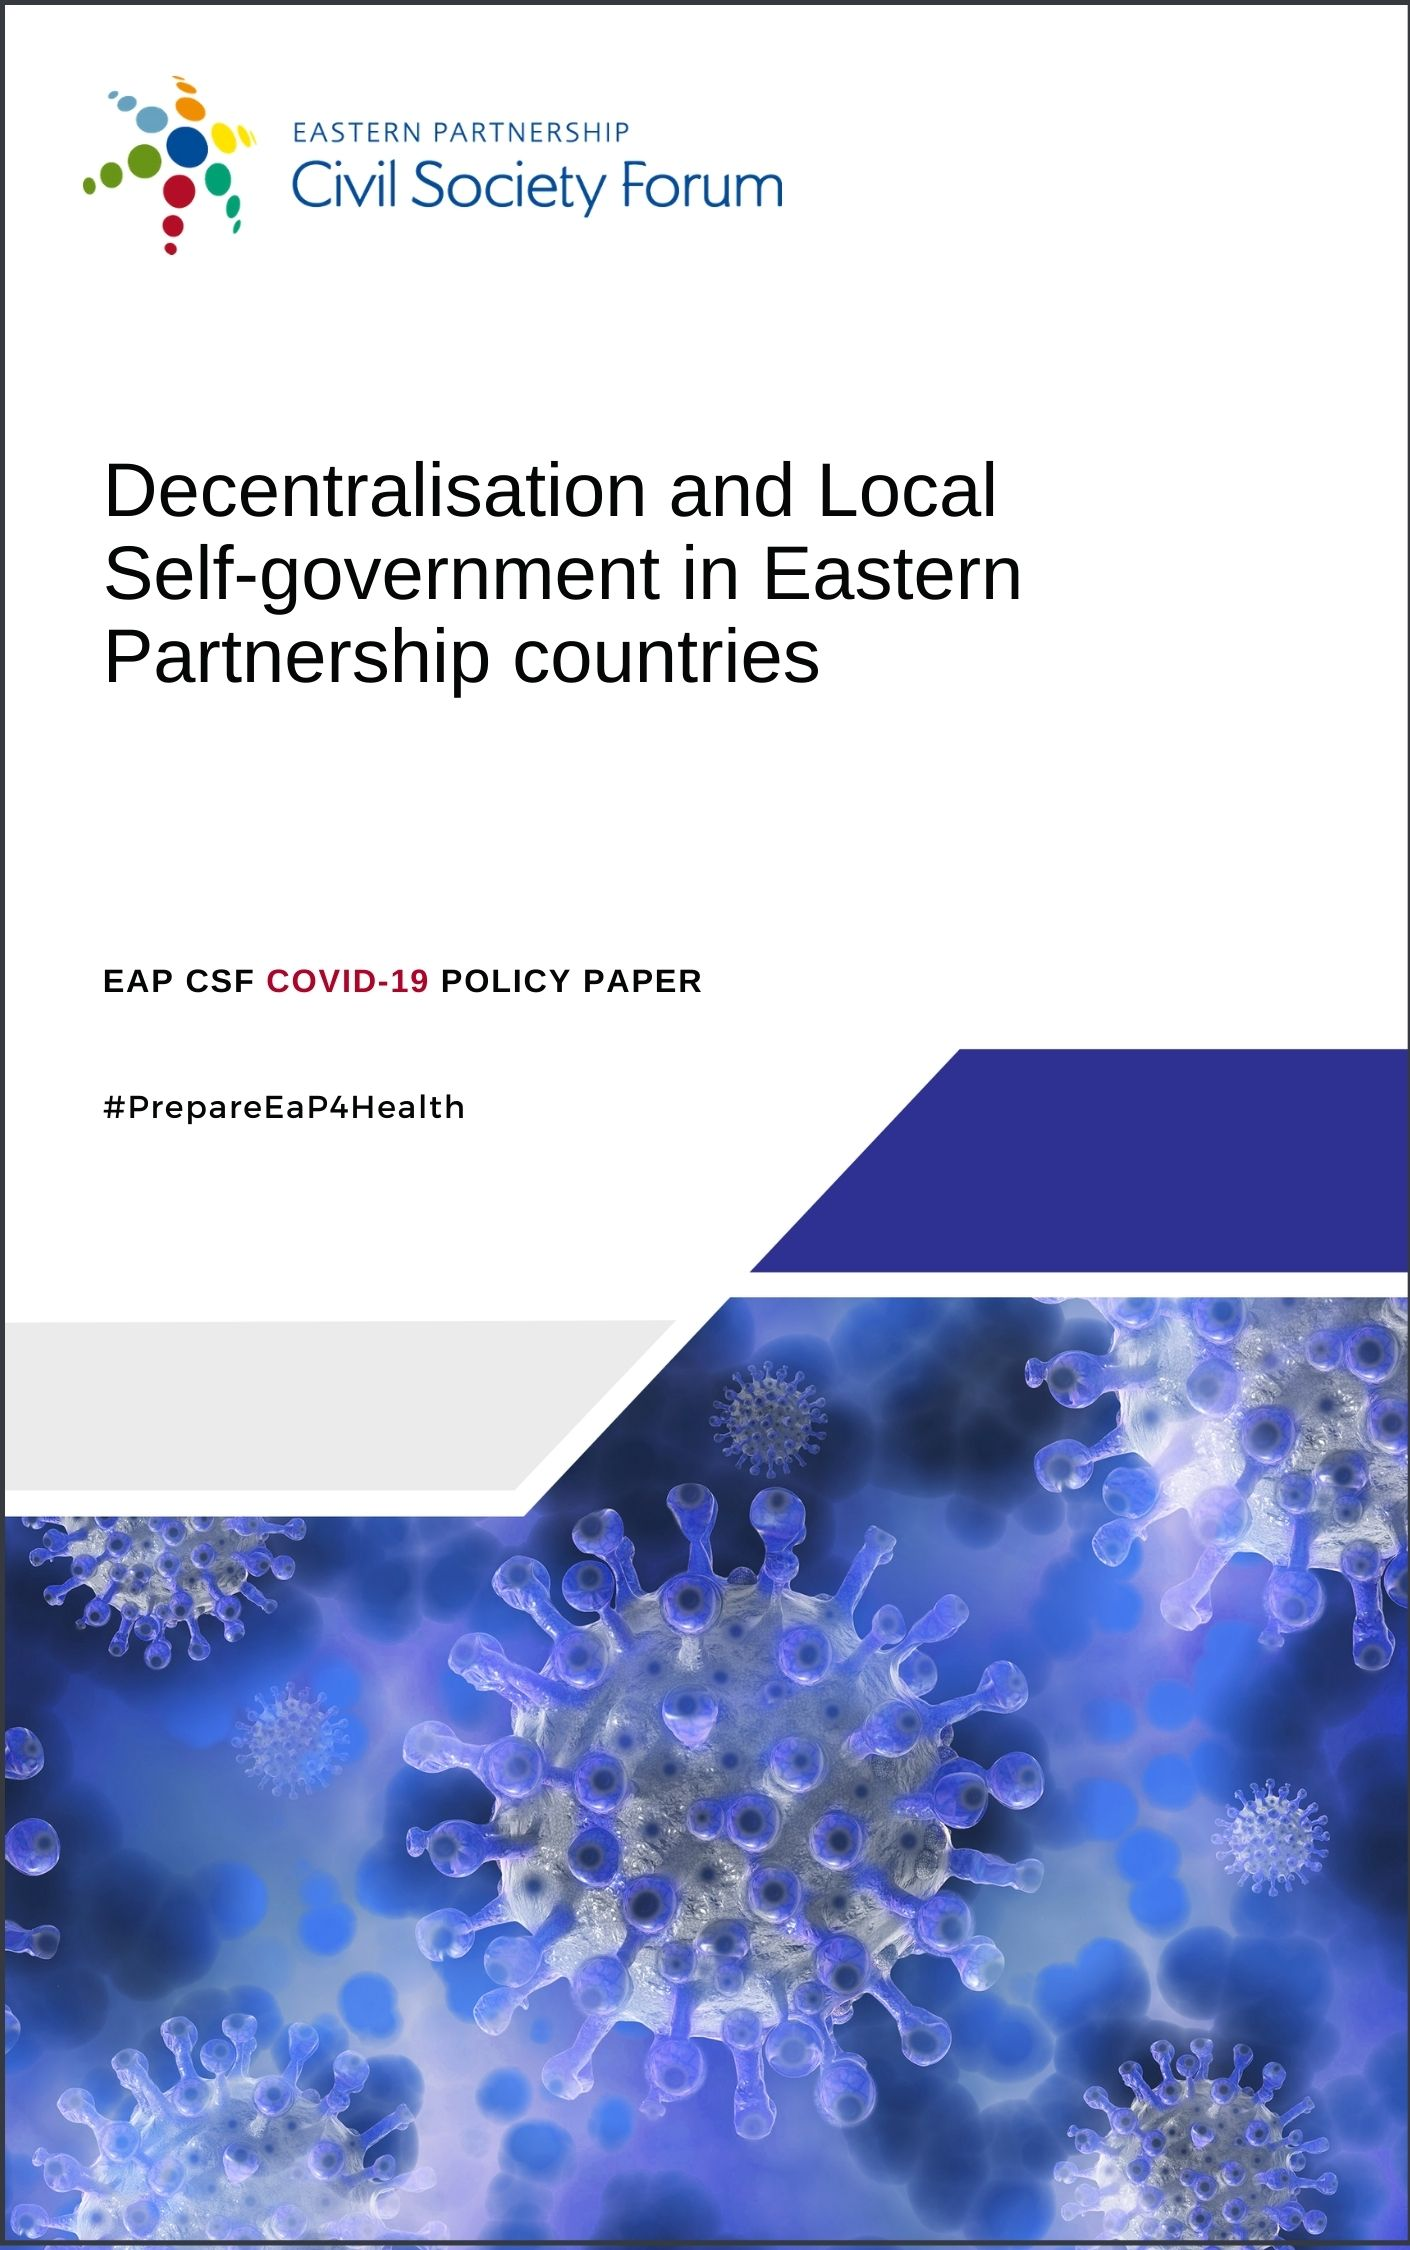 EaP CSF policy paper on decentralisation